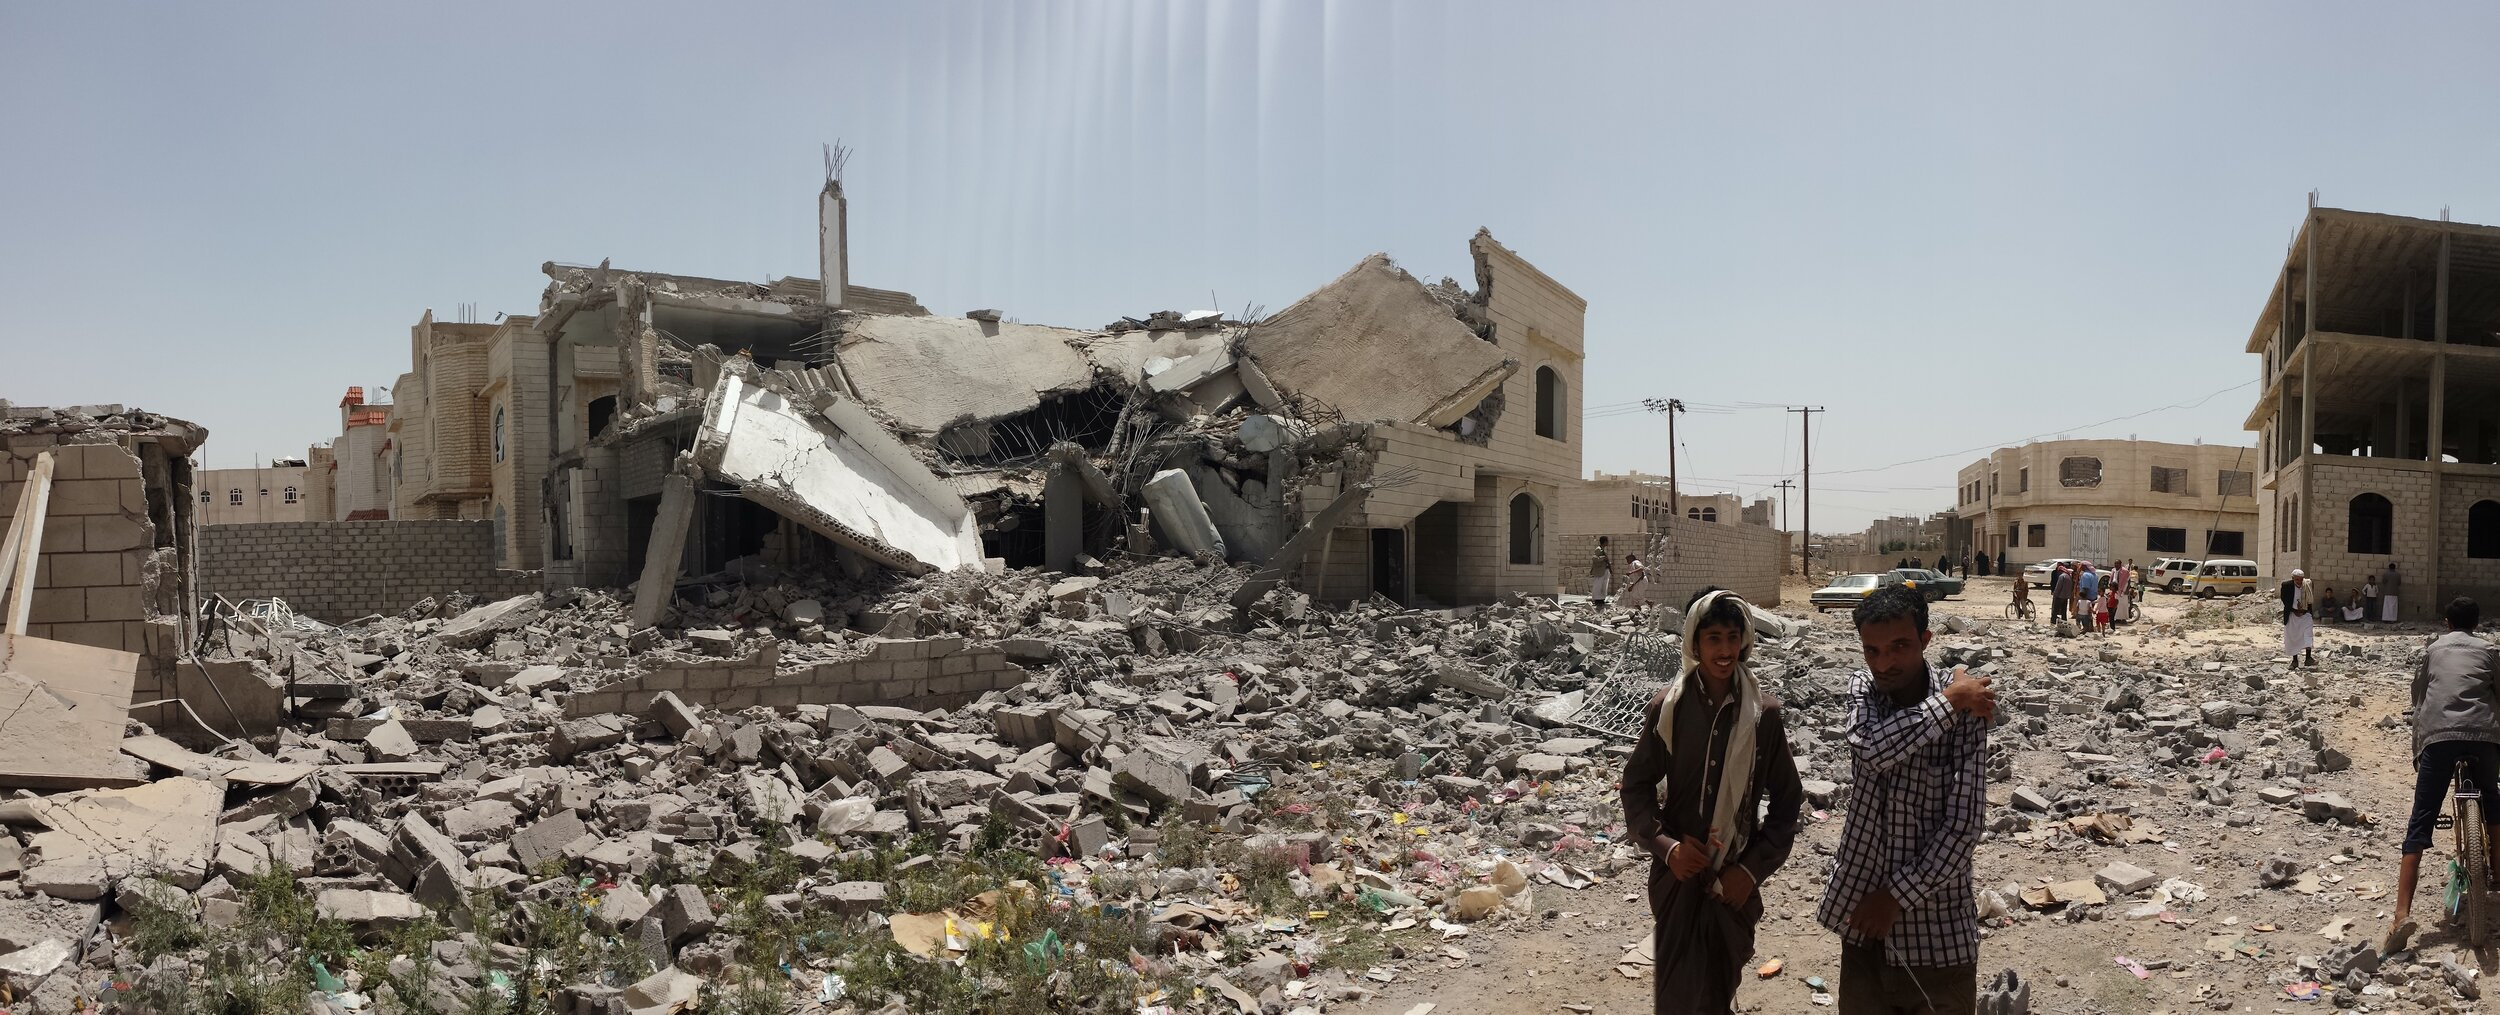 Yemenis stand next to a house destroyed by bombardment in Sana'a, 2016.